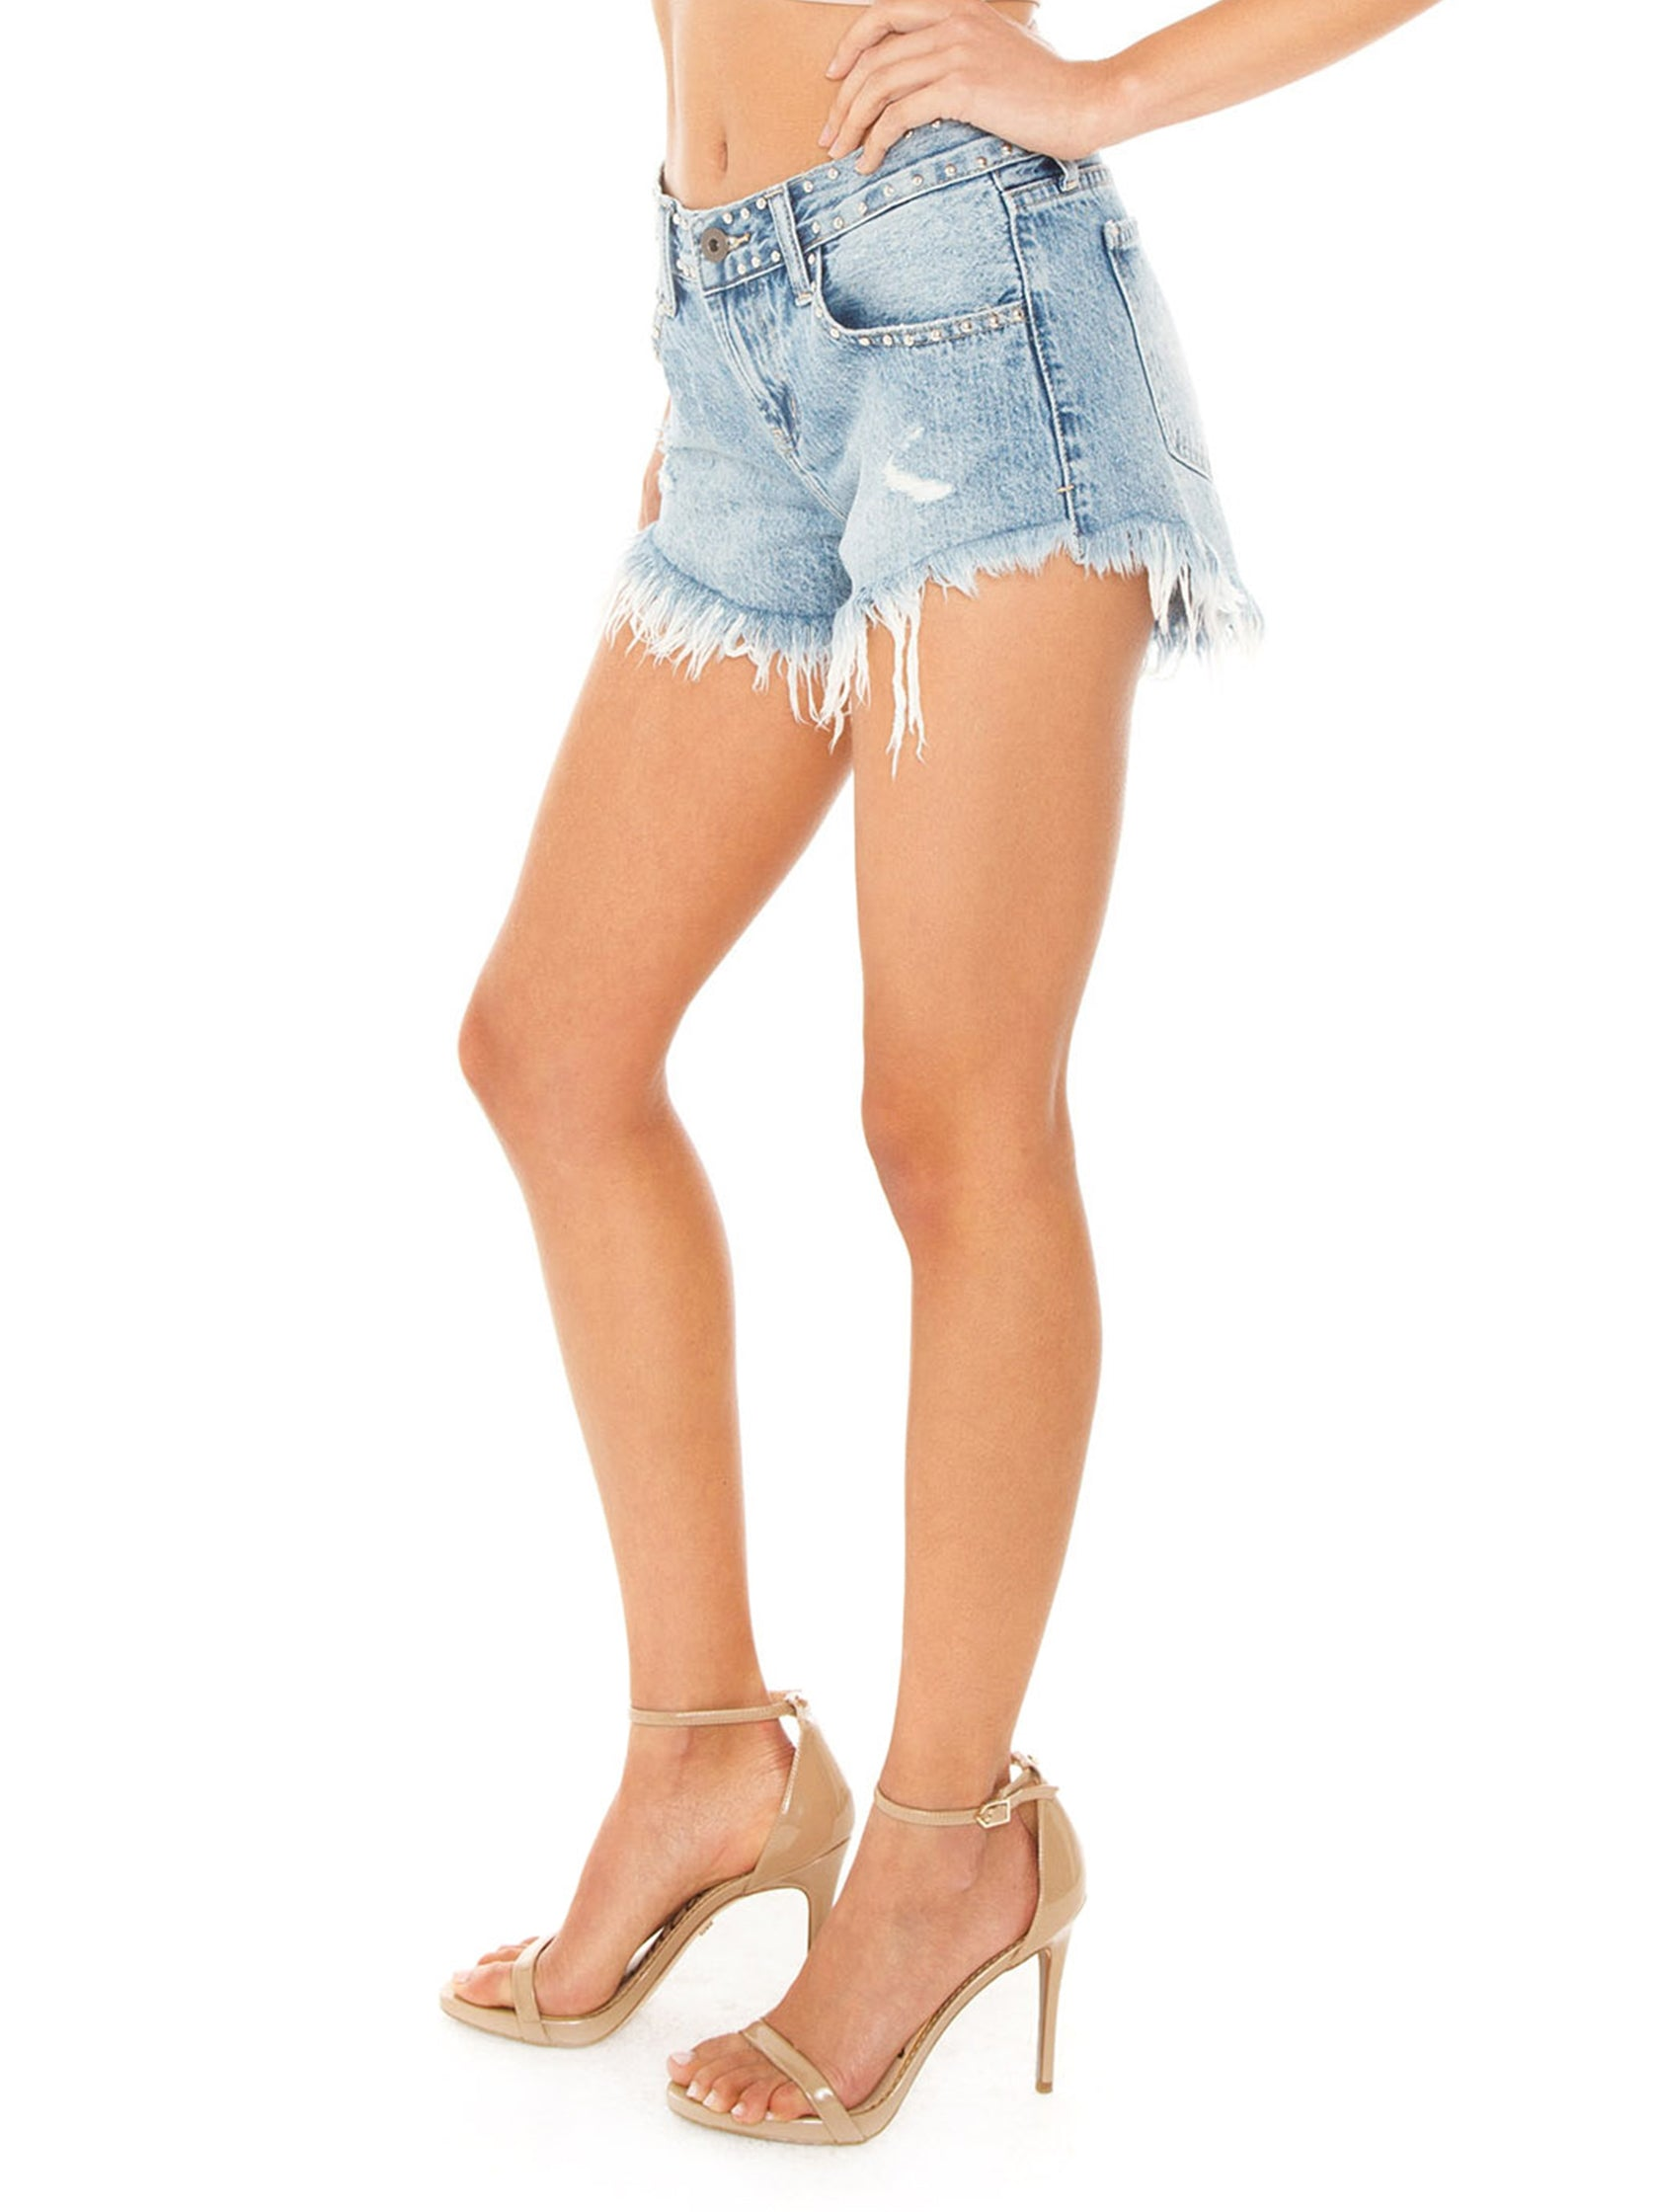 Women wearing a shorts rental from PISTOLA called Gigi Distressed Cutoff Denim Shorts